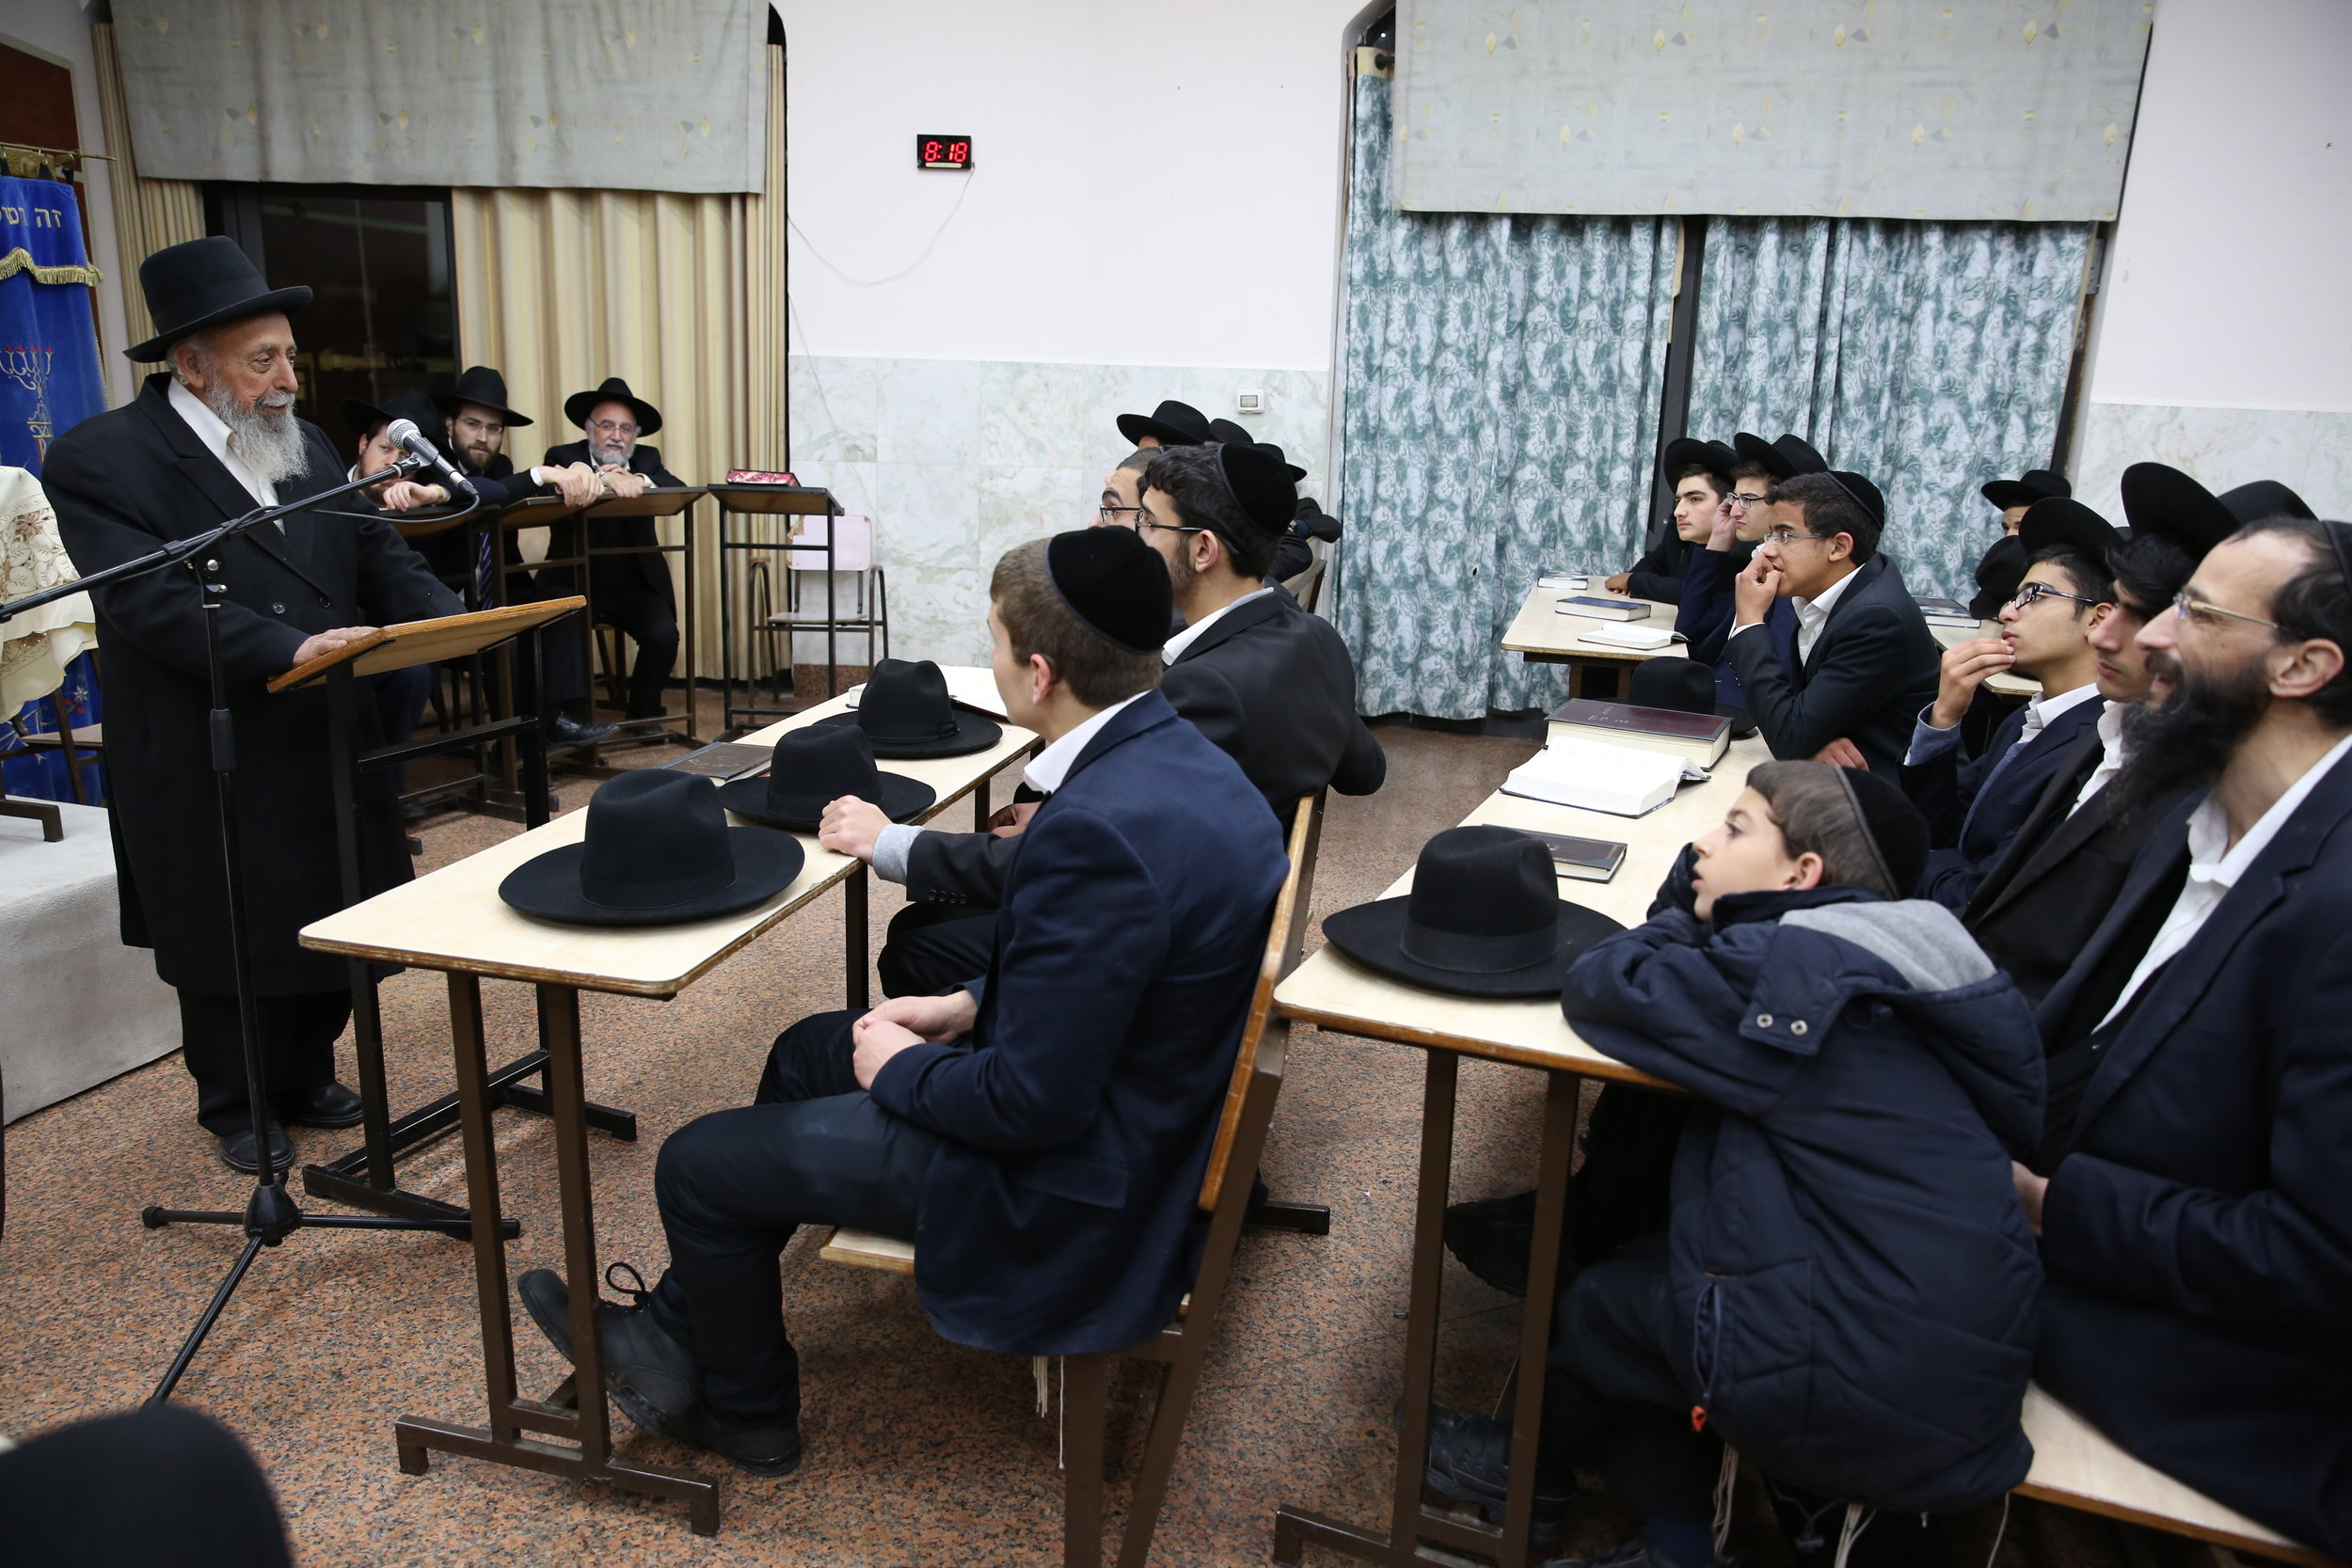 In February 2016, Rabbi Shimon Badani gives a lesson to young haredi men at the Nehora De'oraita yeshiva in the central Israeli city of Elad. Credit: Yaakov Cohen/Flash90.